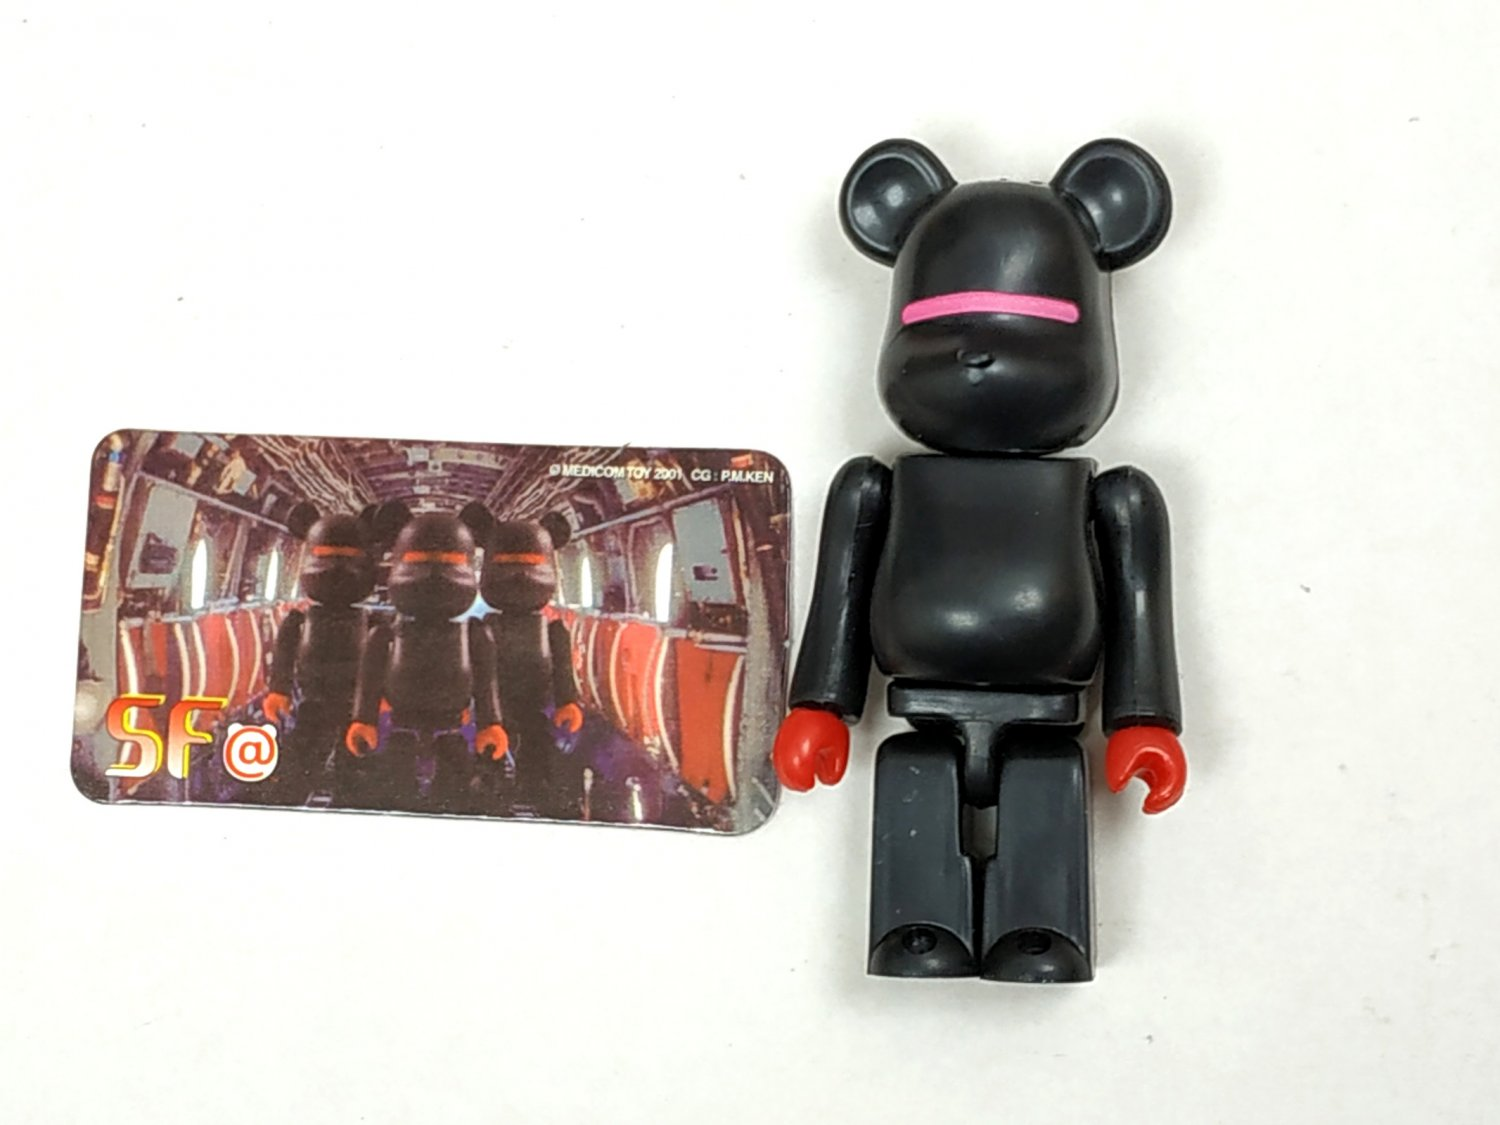 Medicom Toy 2001 Be@rbrick 100% Bearbrick Series 2 SF Action Figure S2 collectible